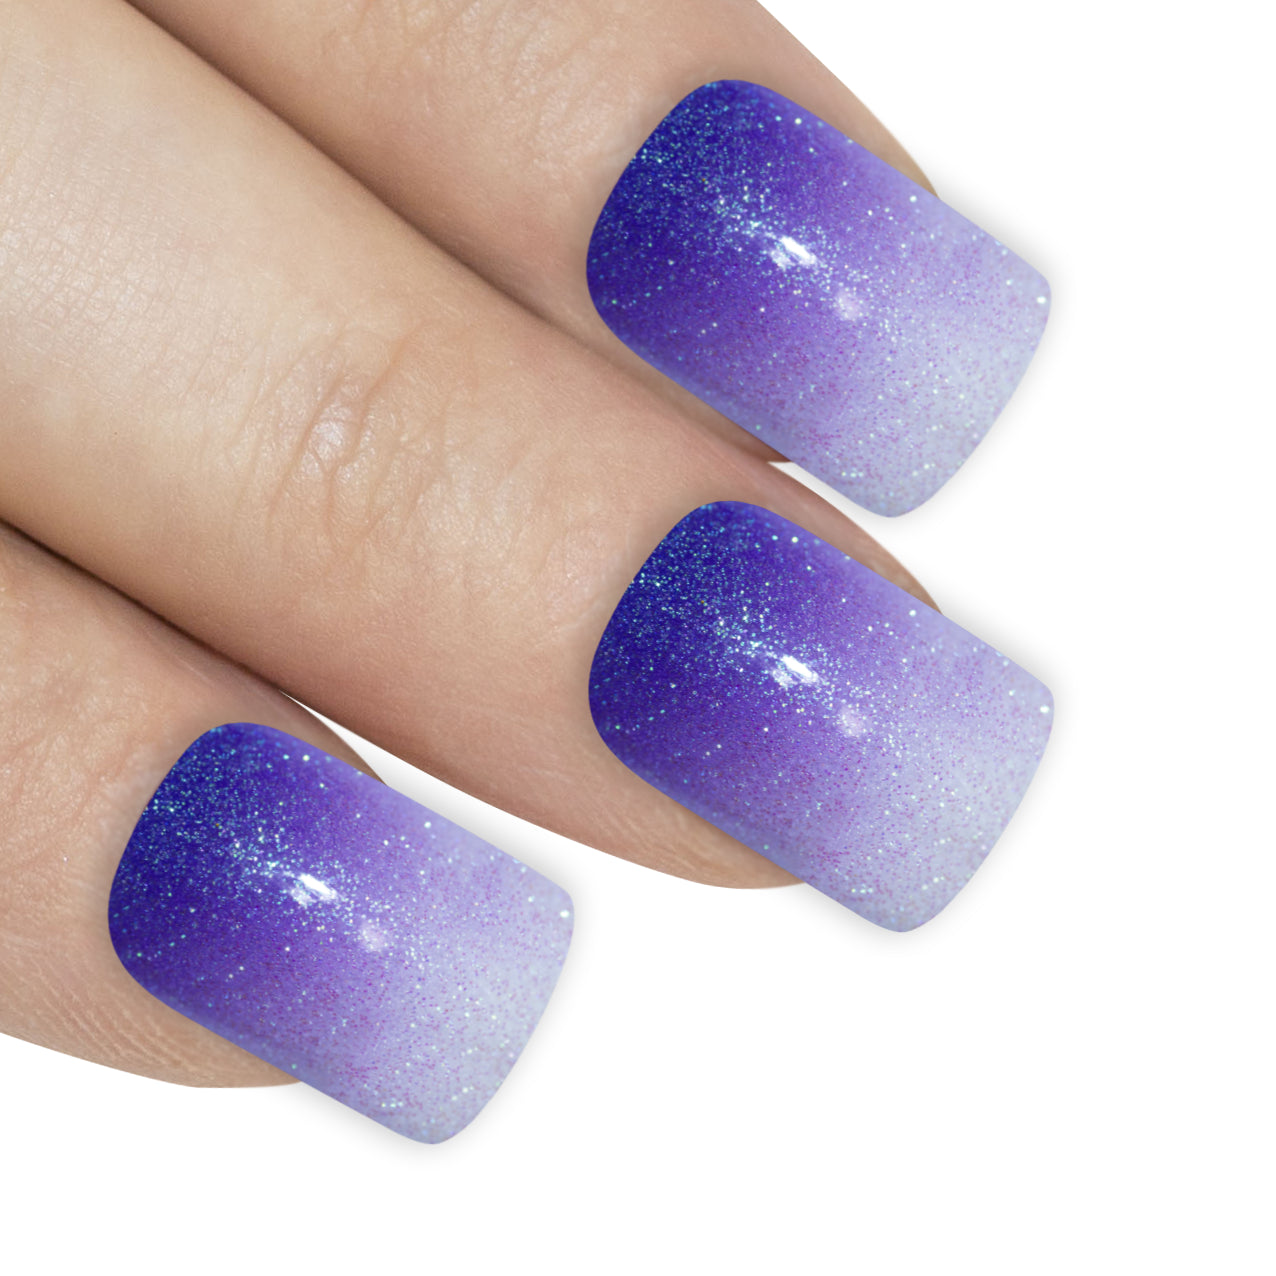 False Nails by Bling Art Purple Gel Ombre French Squoval 24 Fake Medium Tips, Nail Care by Bling Art